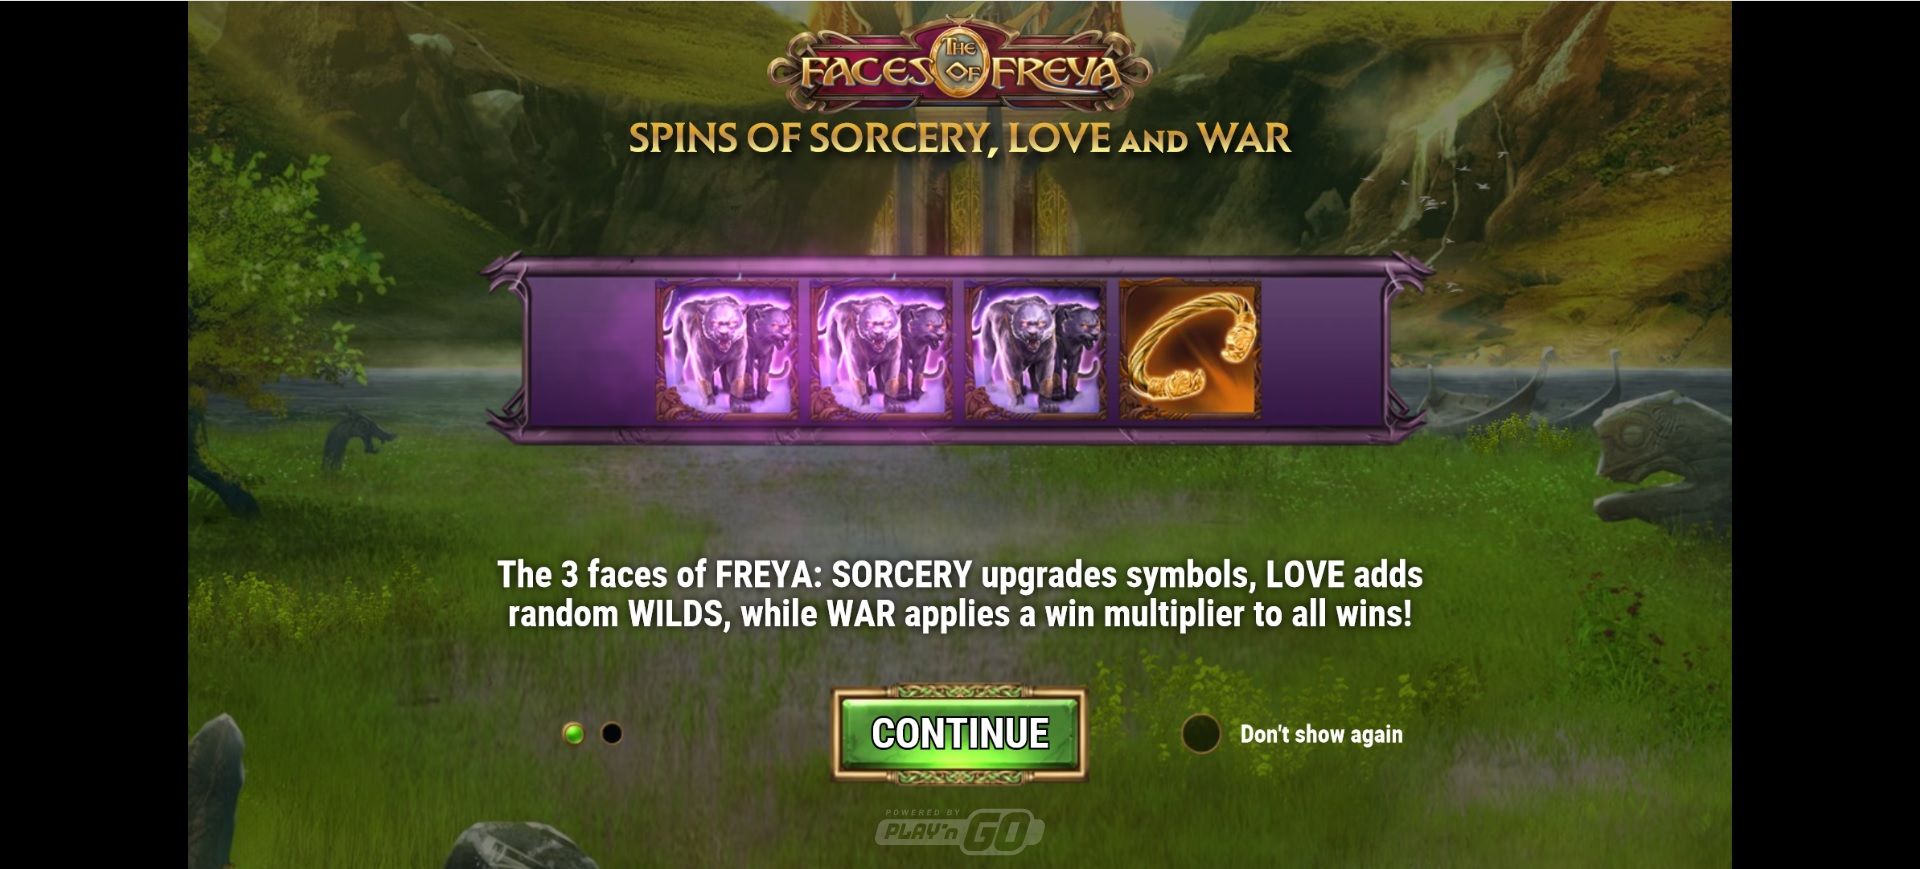 How to win big in The Faces of Freya – Spins of War feature